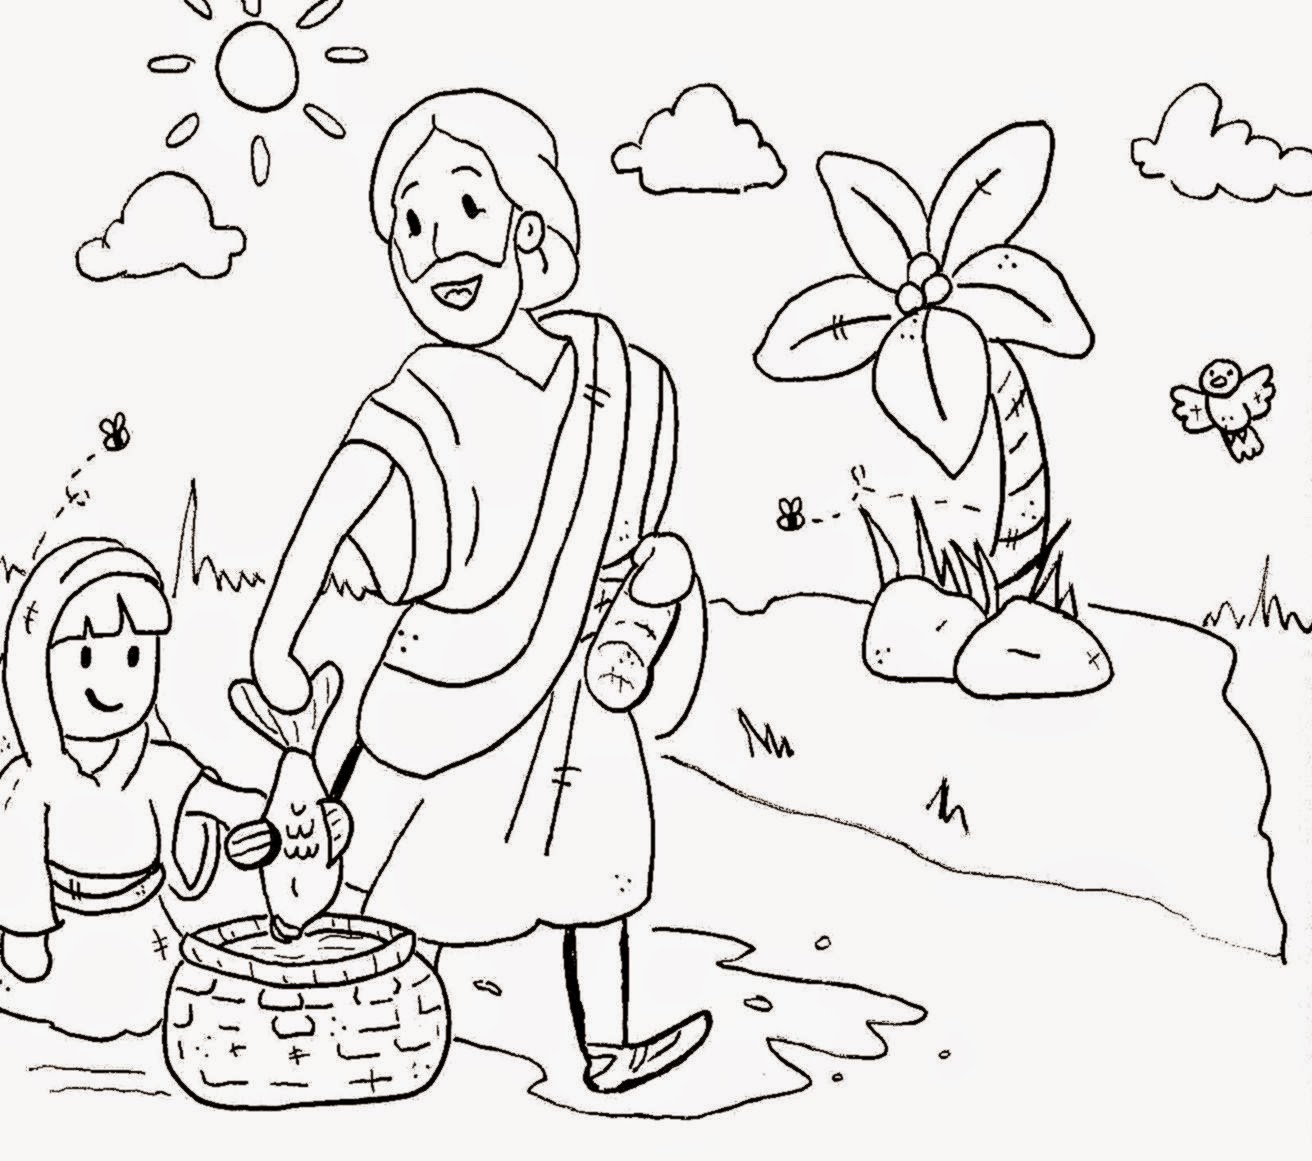 KIDS! Print and color. | Sunday school coloring pages, Sunday ... | 1161x1312